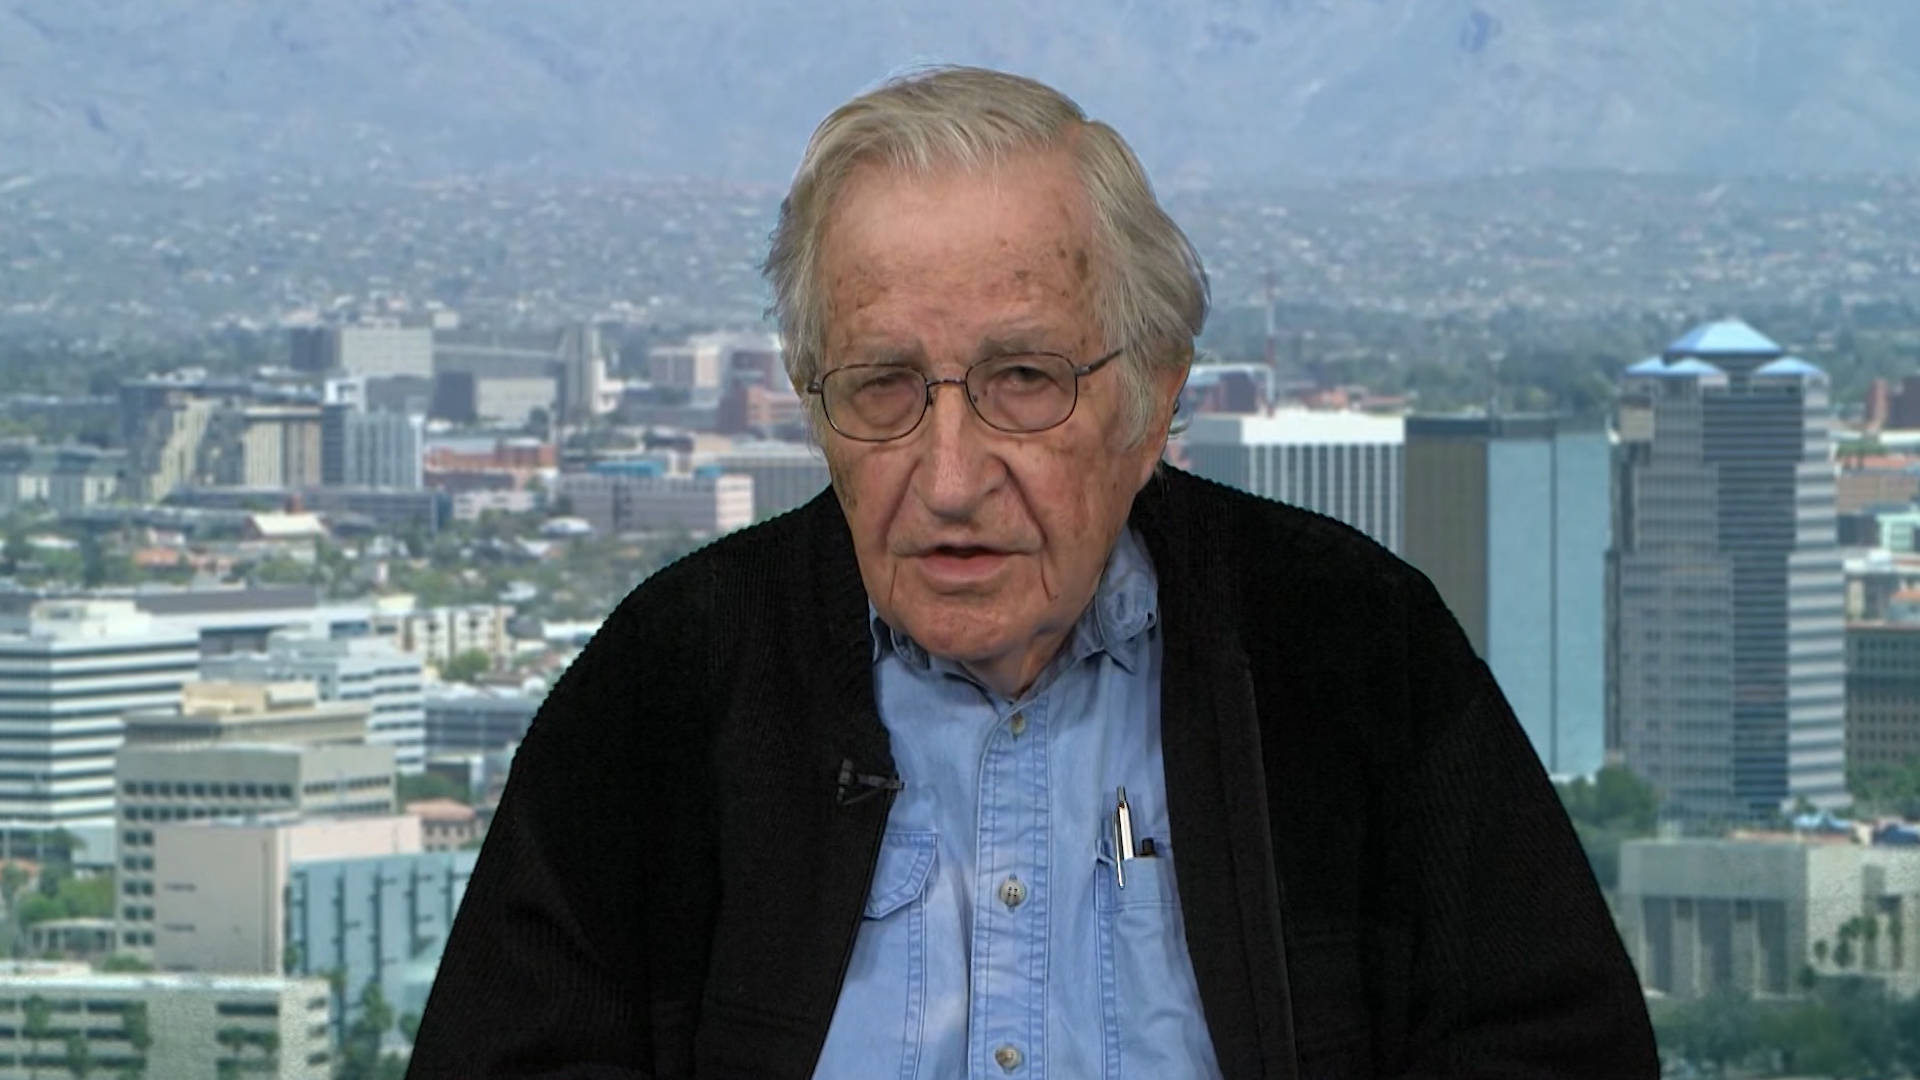 Noam Chomsky: The Future of Organized Human Life Is At Risk Thanks to GOP's Climate Change Denialism